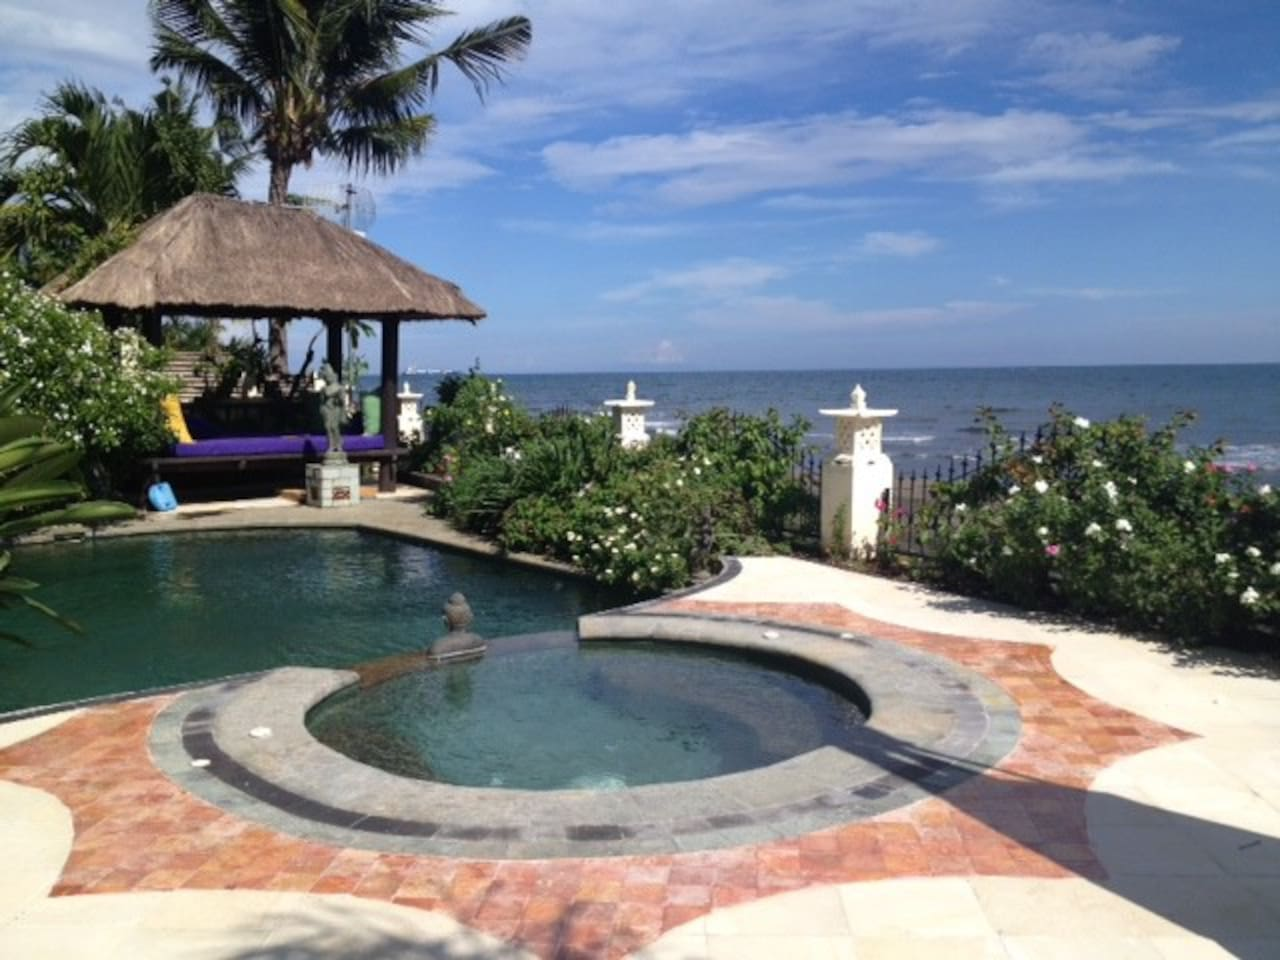 Front pool deck on the ocean.